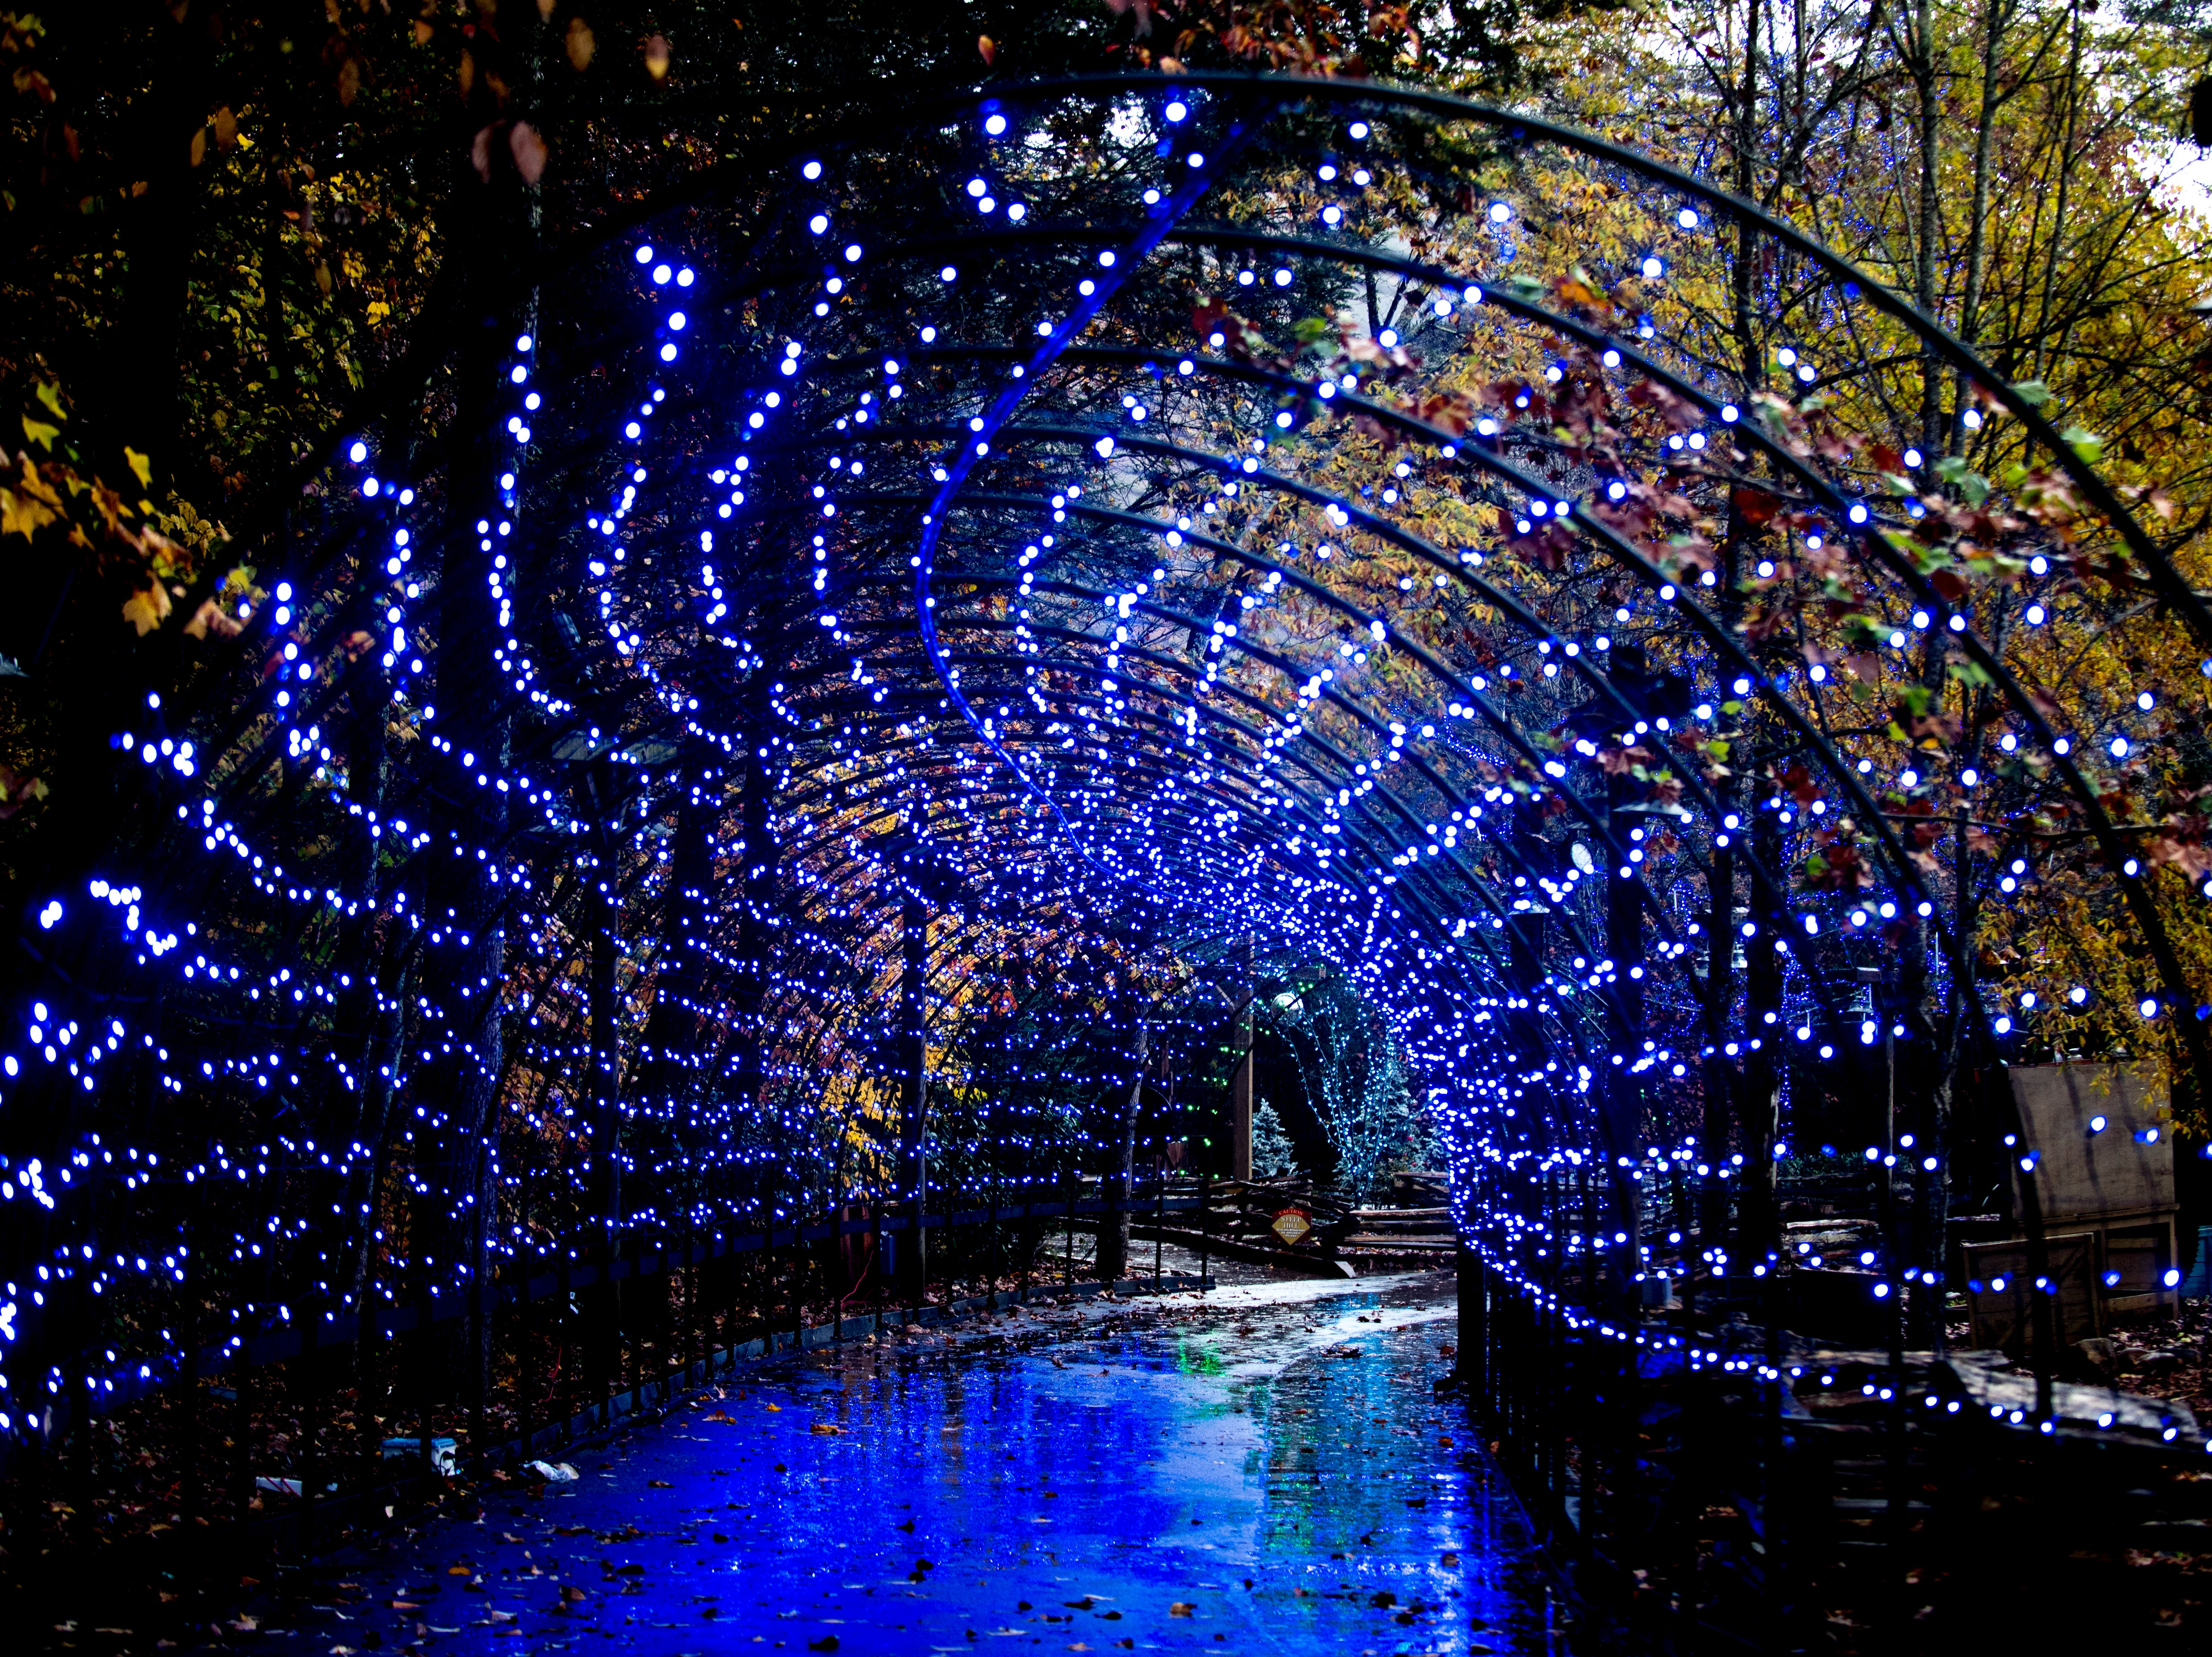 The Arctic Passage light tunnel during media day for a behind-the-scenes look of the Glacier Ridge light display at Dollywood in Pigeon Forge, Tennessee on Friday, November 9, 2018. Glacier Ridge features several new lighting displays, including a 50-ft. tall animated tree, the all new Arctic Passage and the Northern Lights.